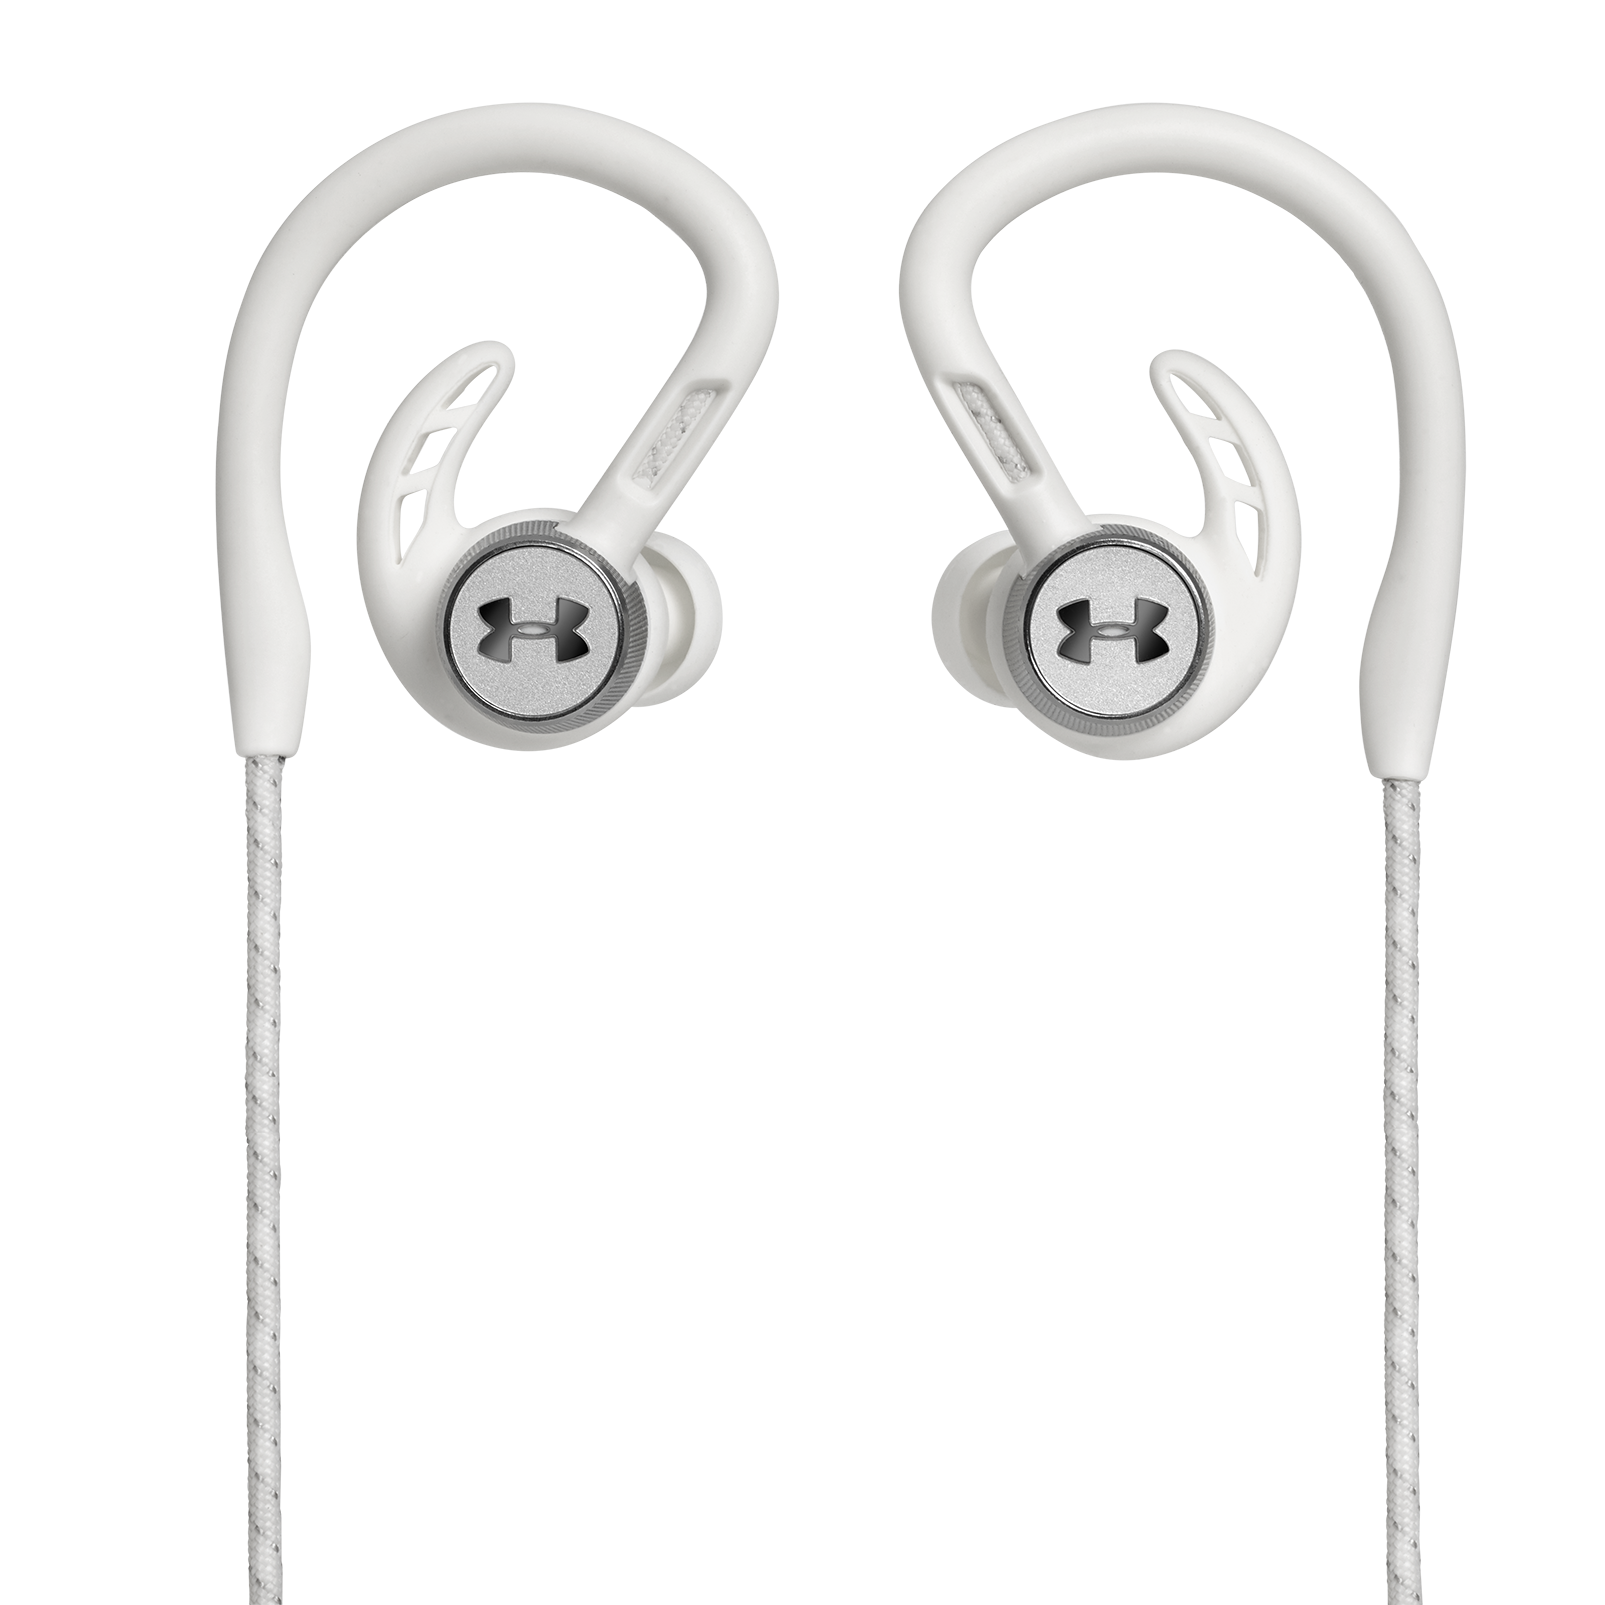 UA Sport Wireless PIVOT - White - Secure-fitting wireless sport earphones with JBL technology and sound - Back